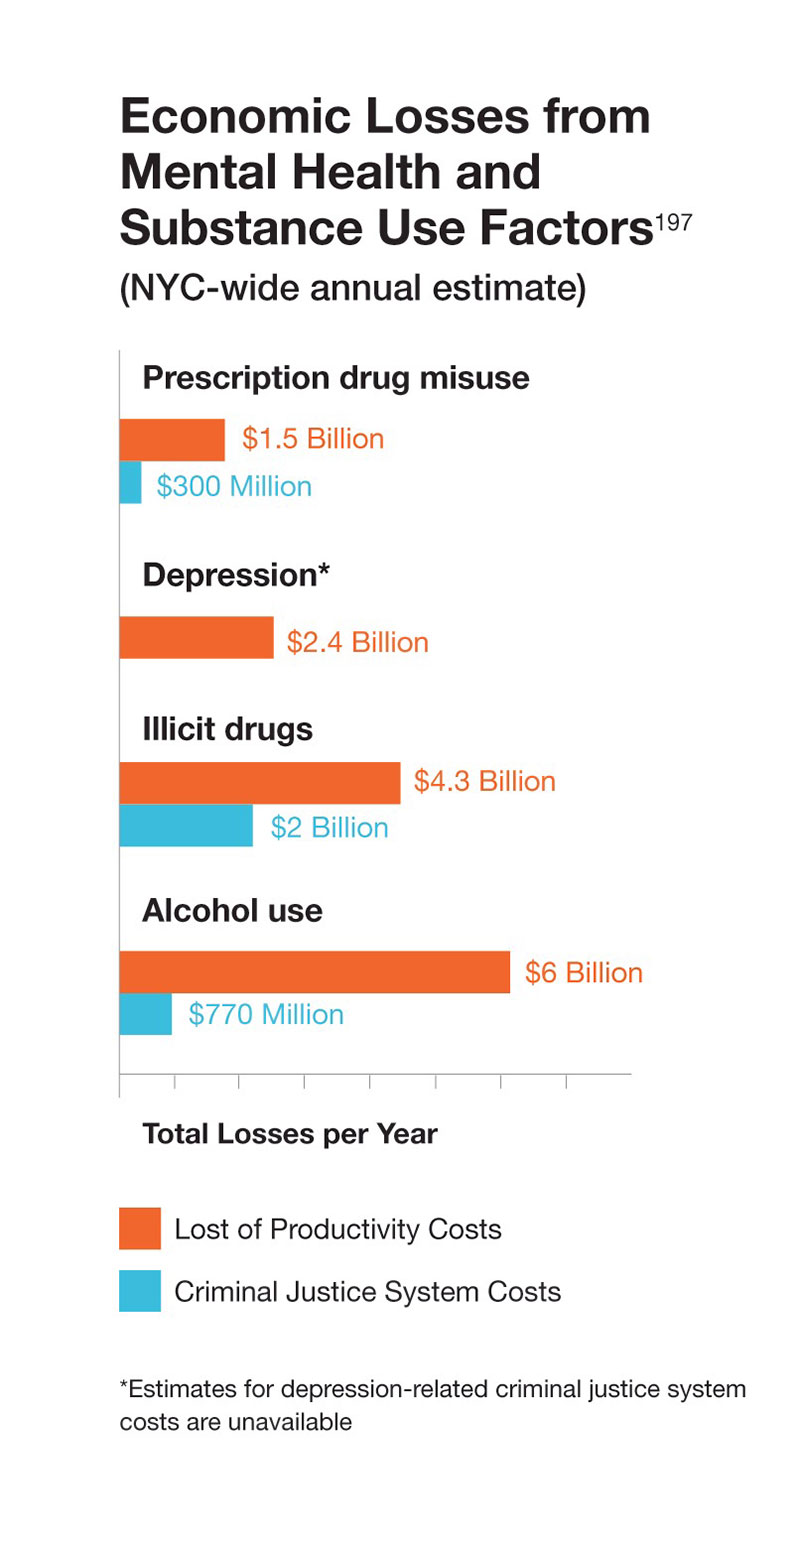 Economic Losses from Mental Health and Substance Use Factors